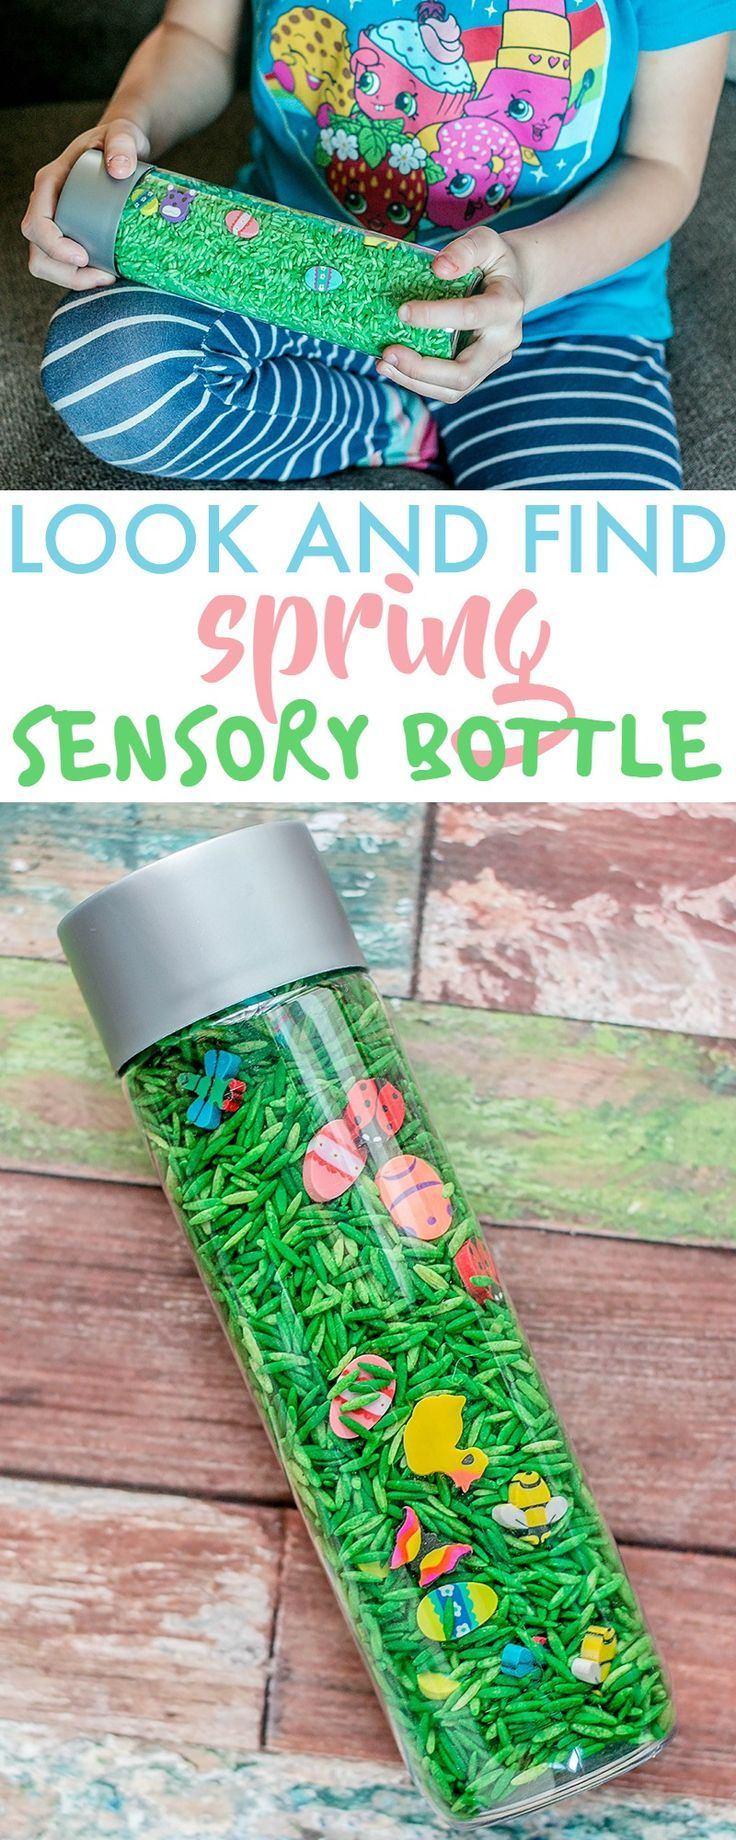 This Look and Find Spring Sensory Bottle is fun & easy to make and creates a fun, sensory, tactile experience. Can also be designed as a game for all ages.